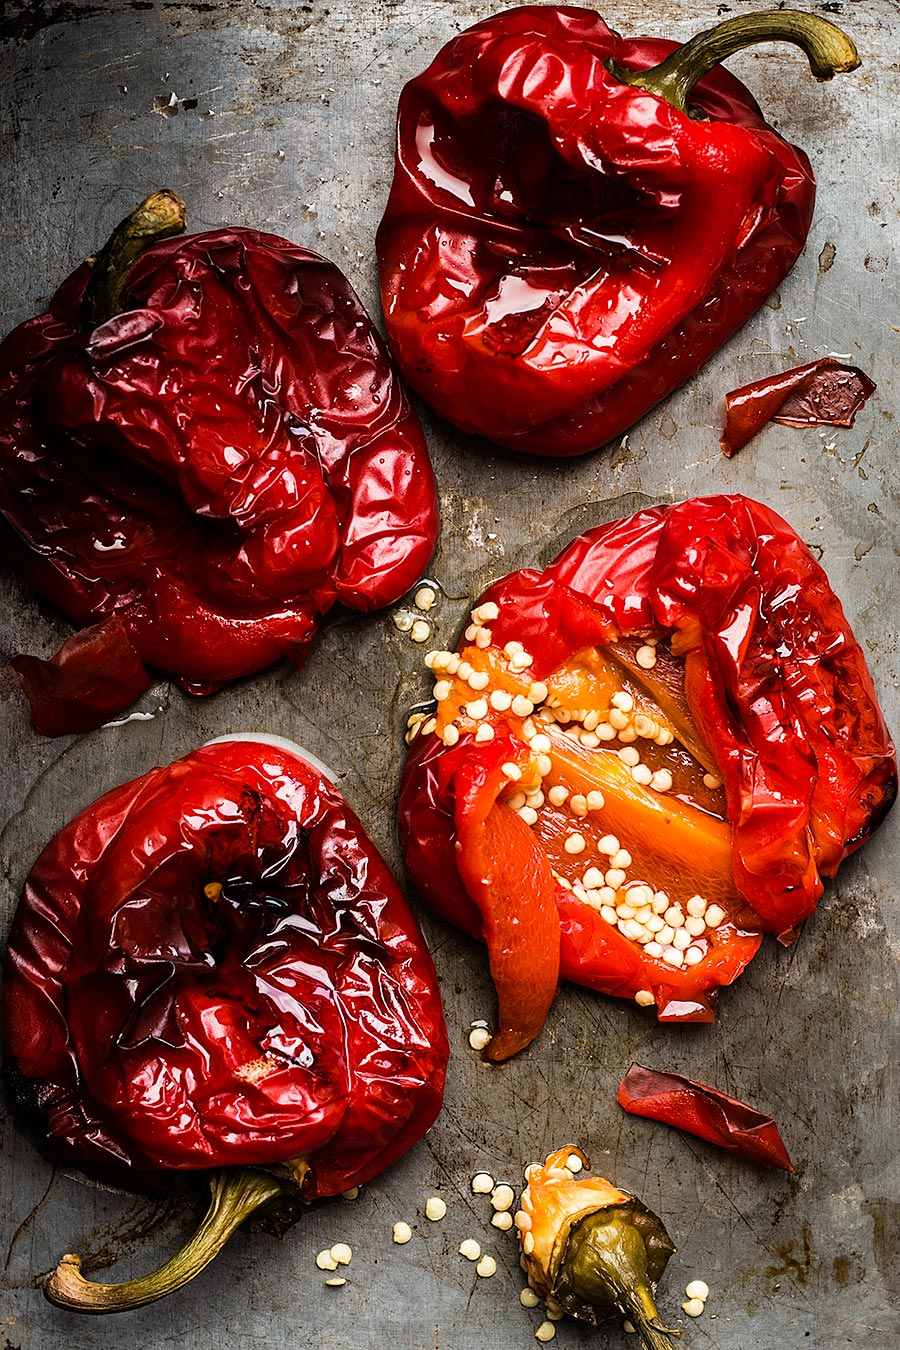 Roasted peppers by Laura Domingo